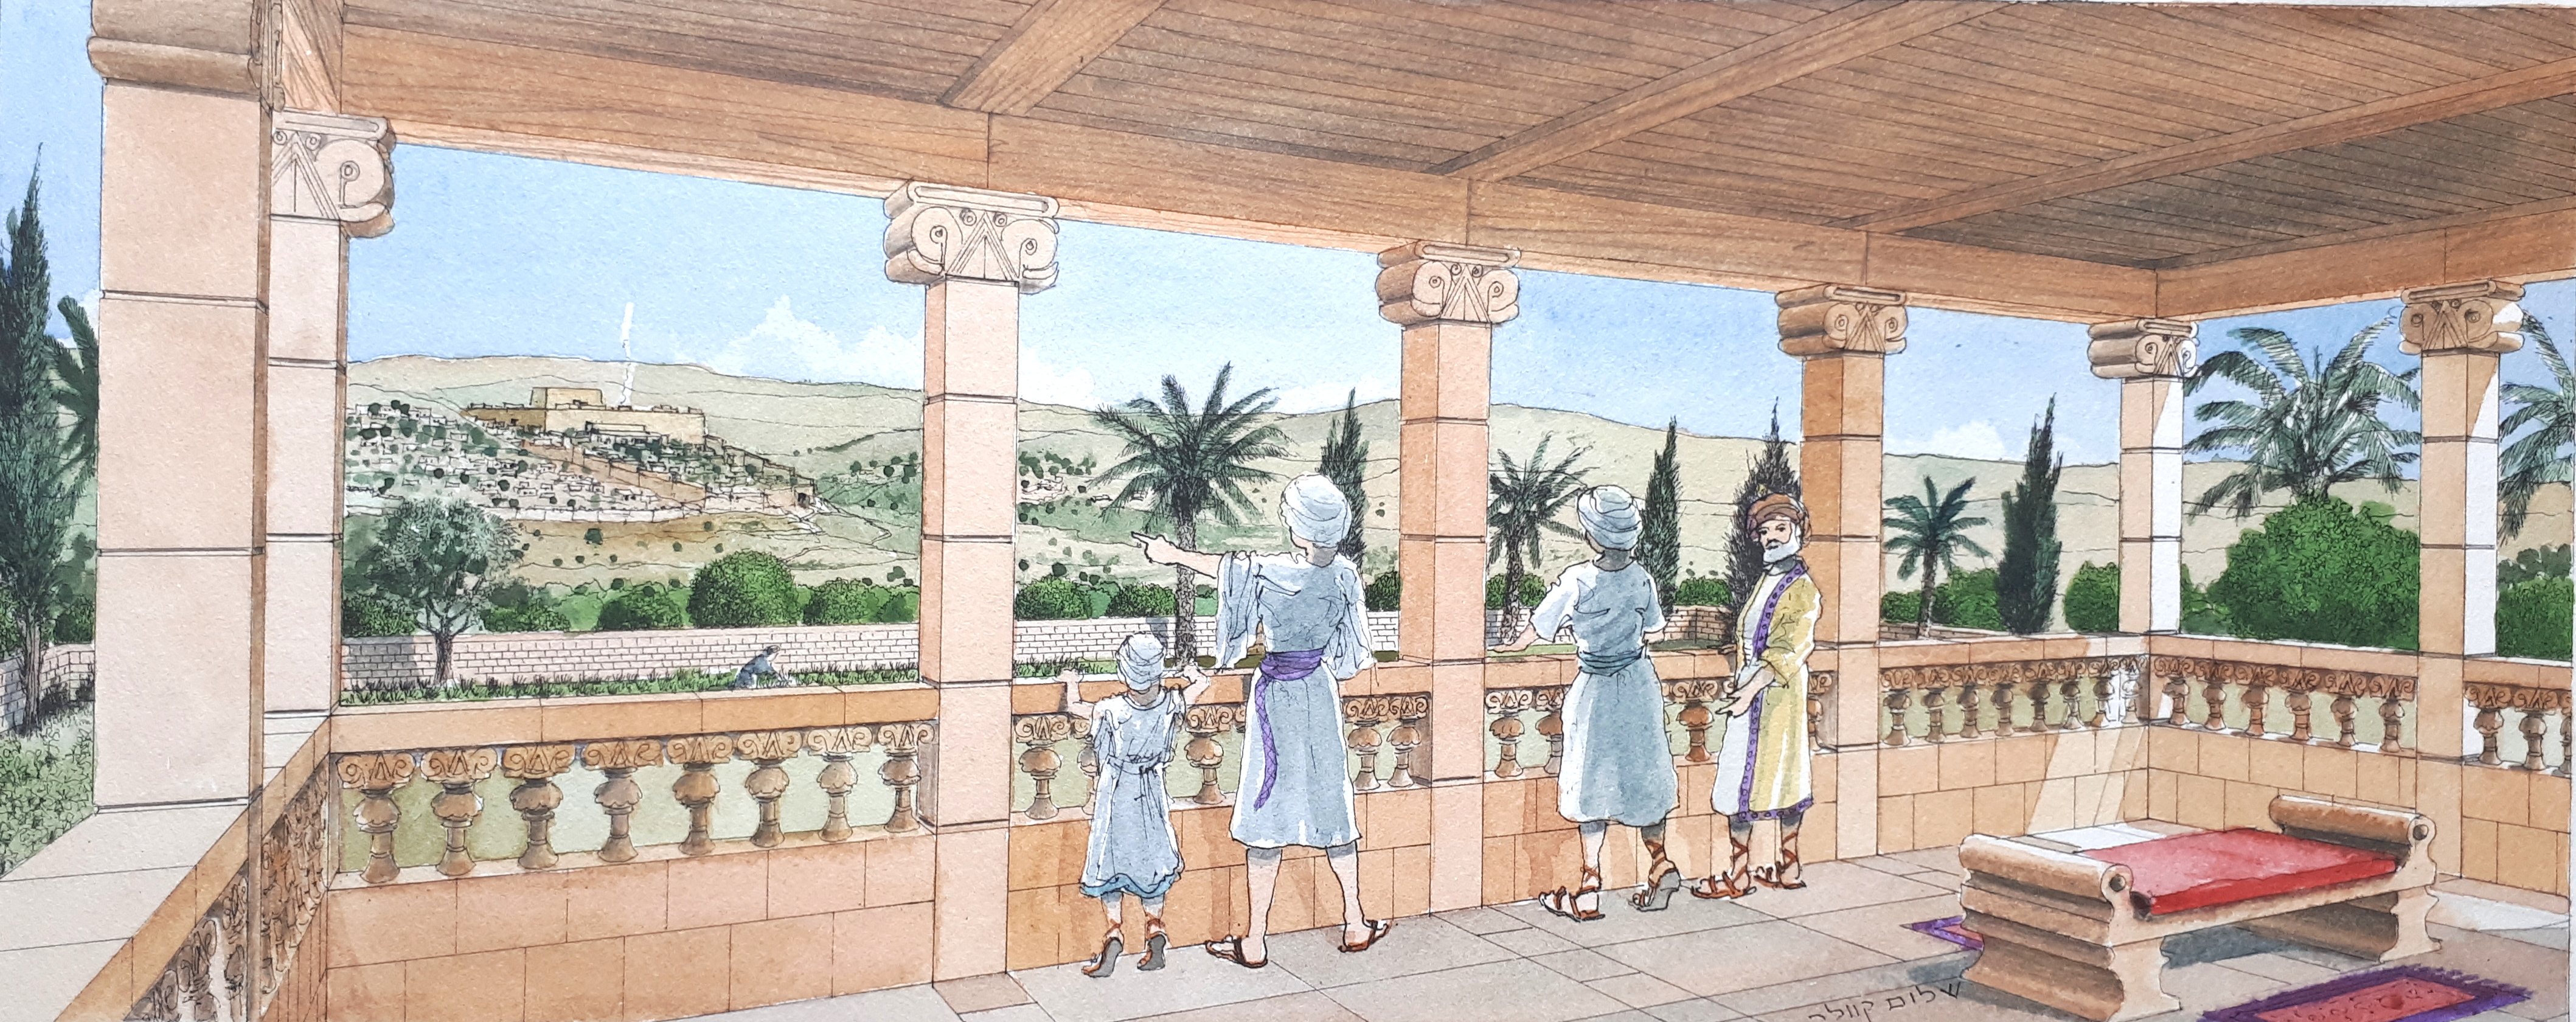 Simulation of the royal estate that stood in Armon Hanatziv. Illustration: Shalom Kveller, City of D